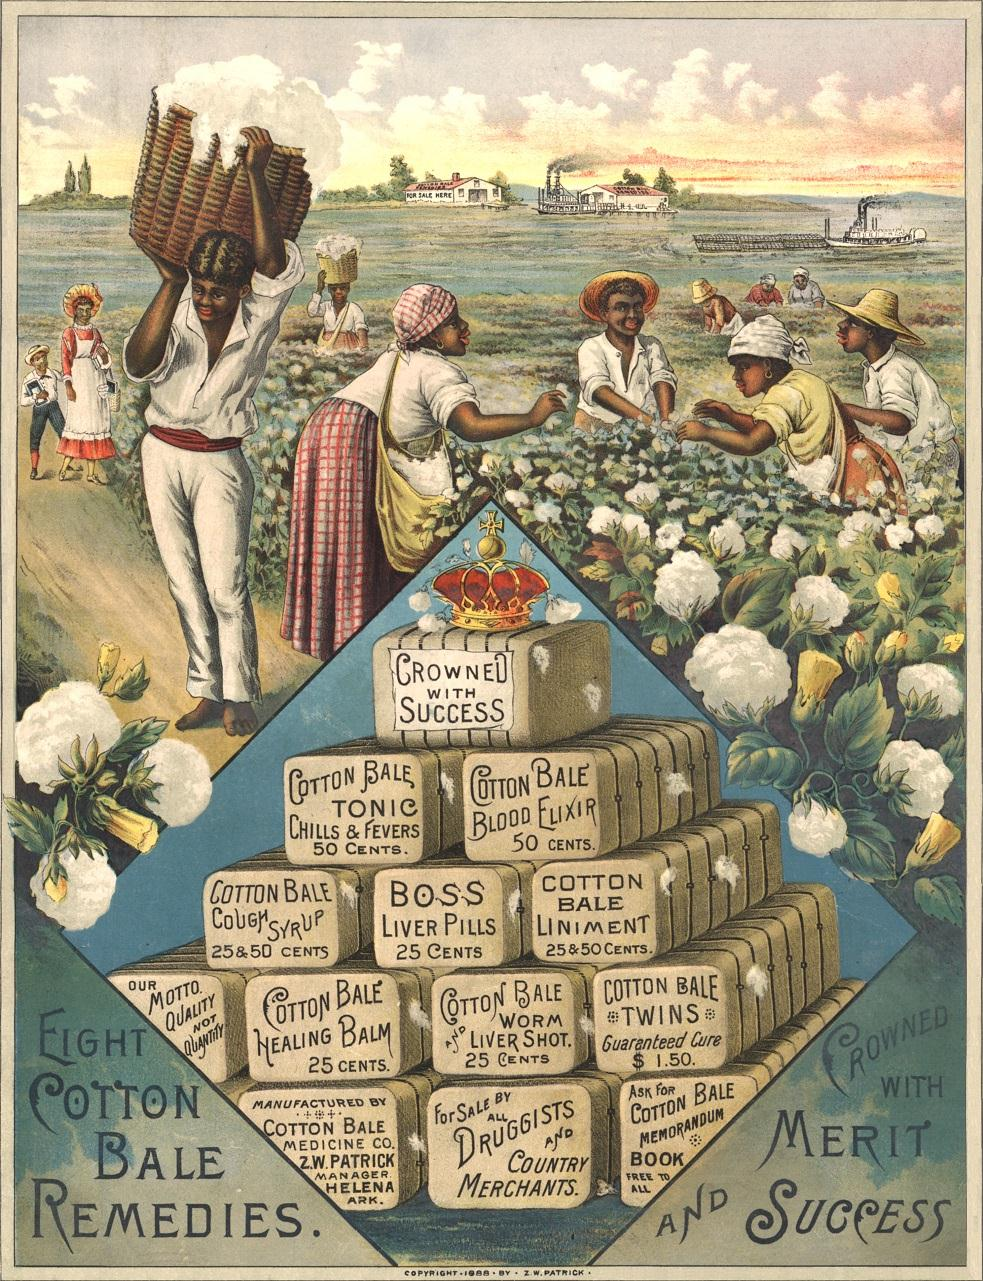 CottonBaleRemedies1888colorLitho33percentForNORI